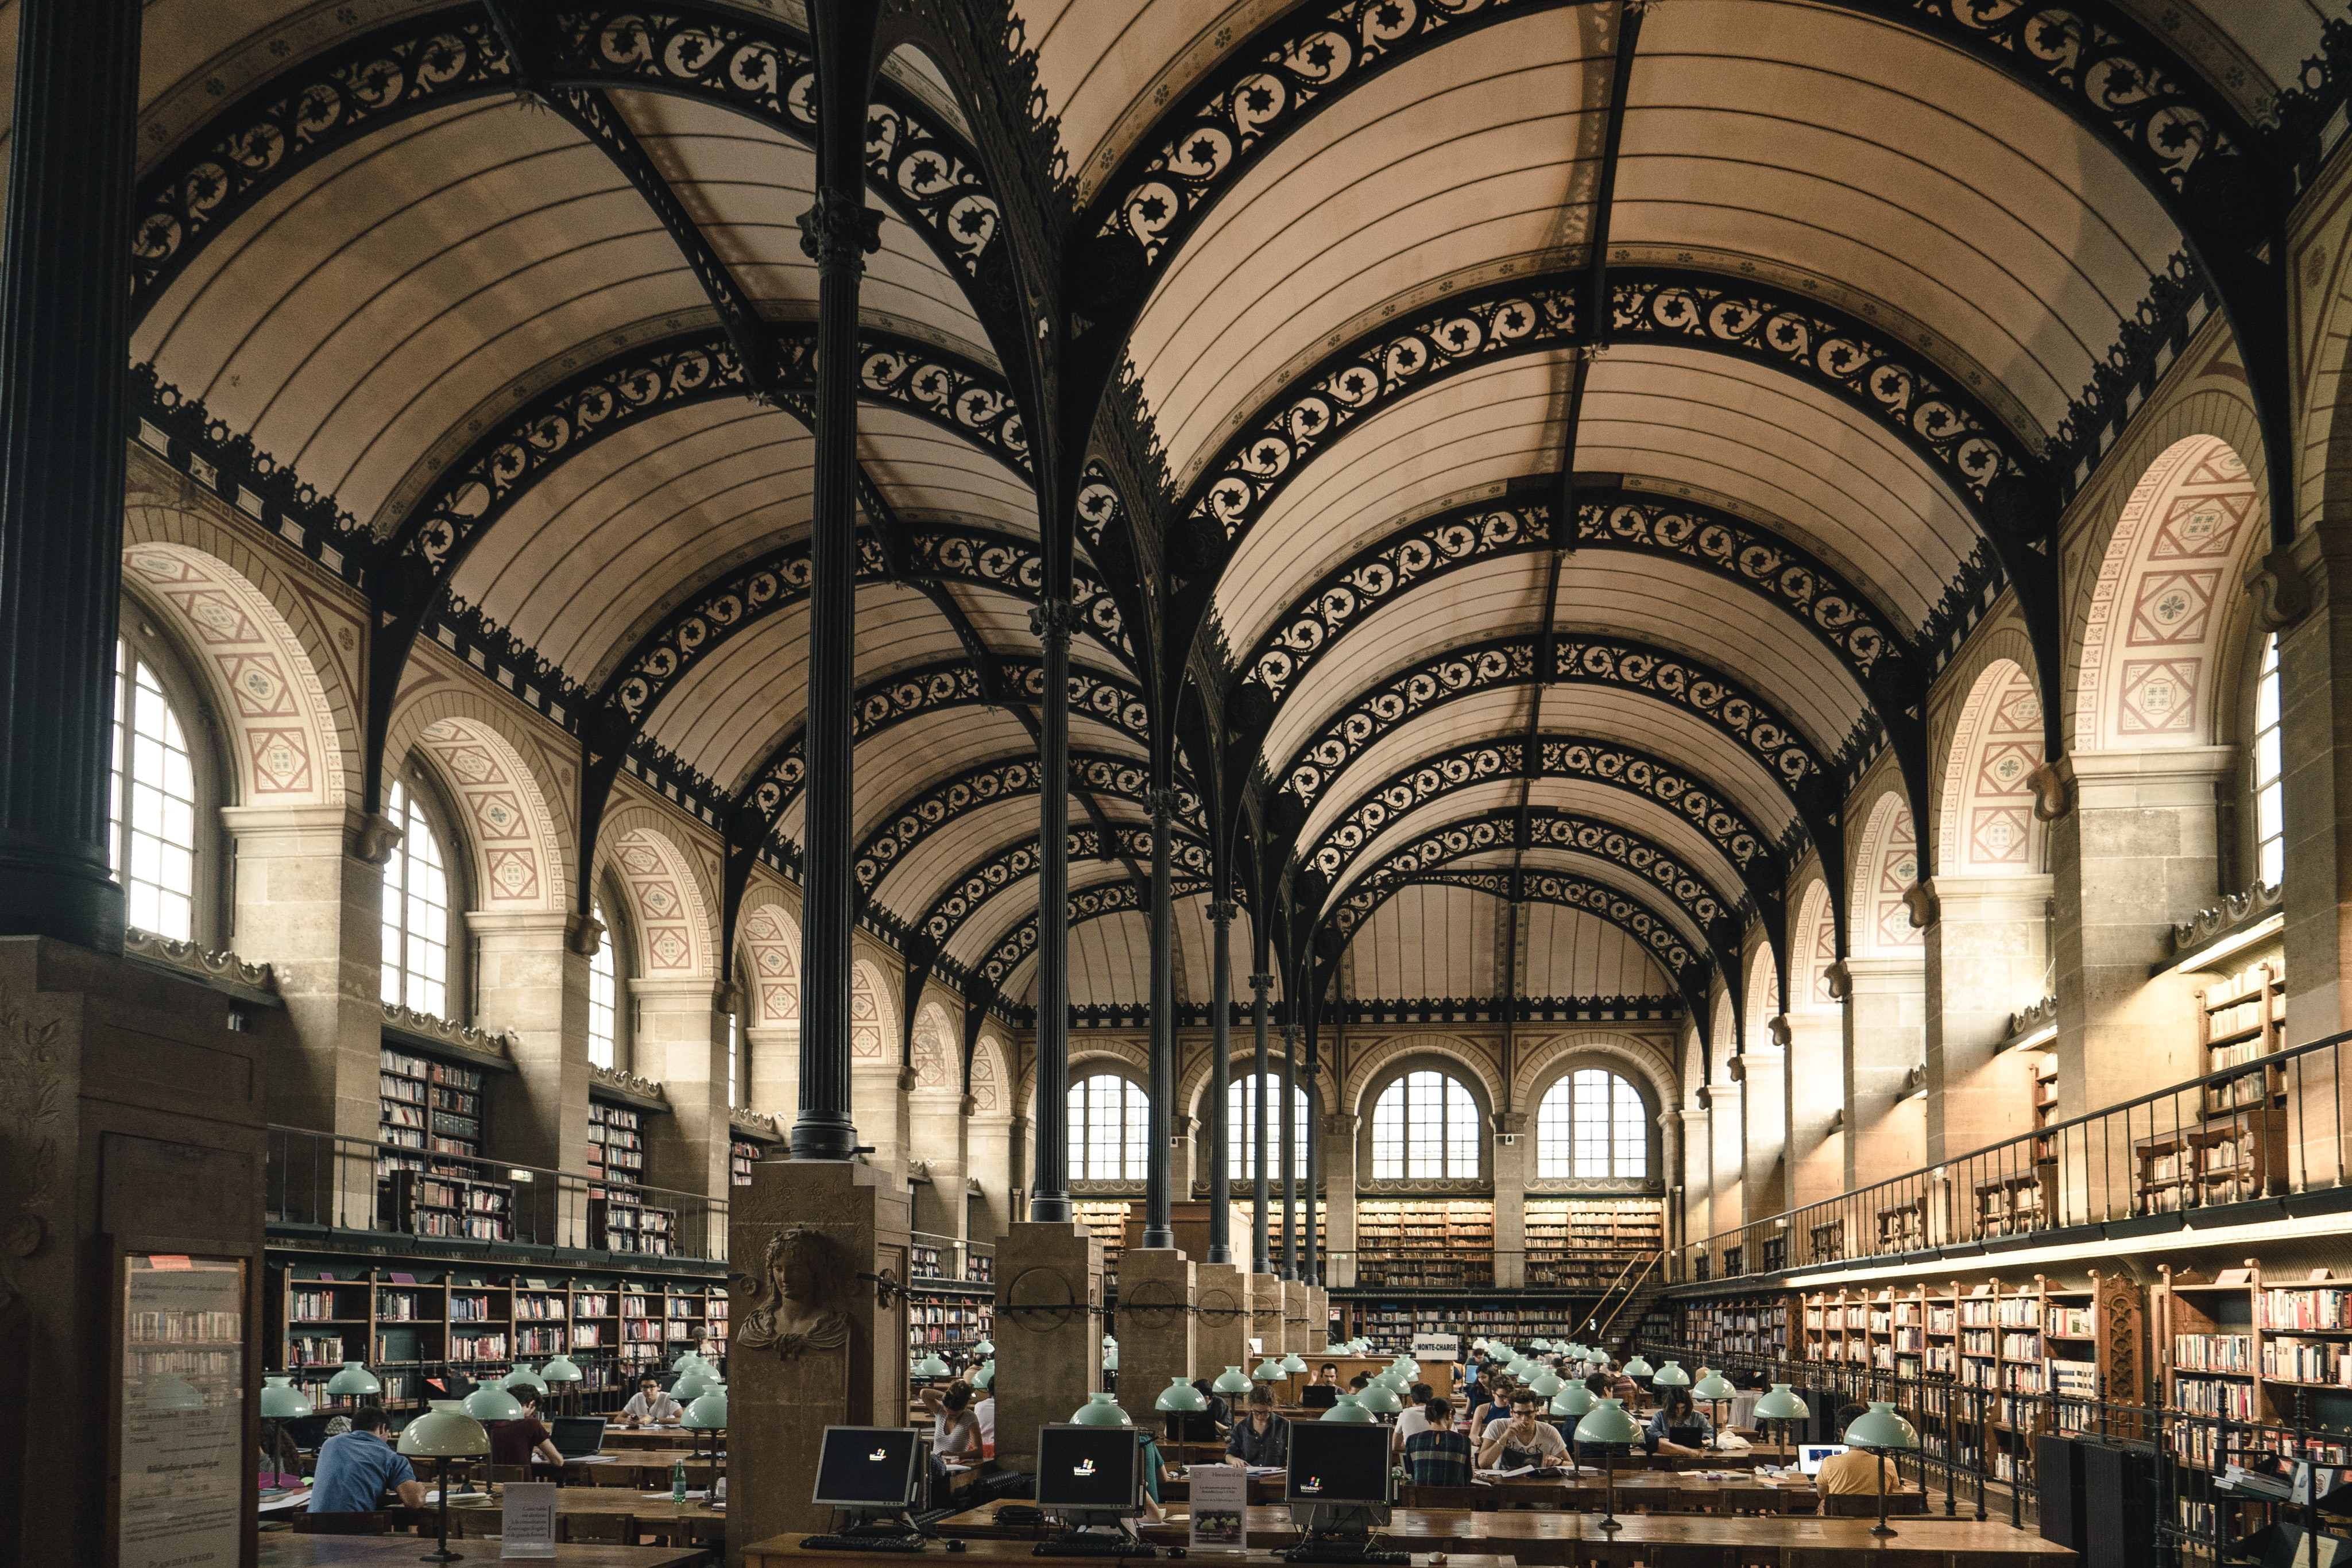 A beautiful library with arches and bookshelves in Paris